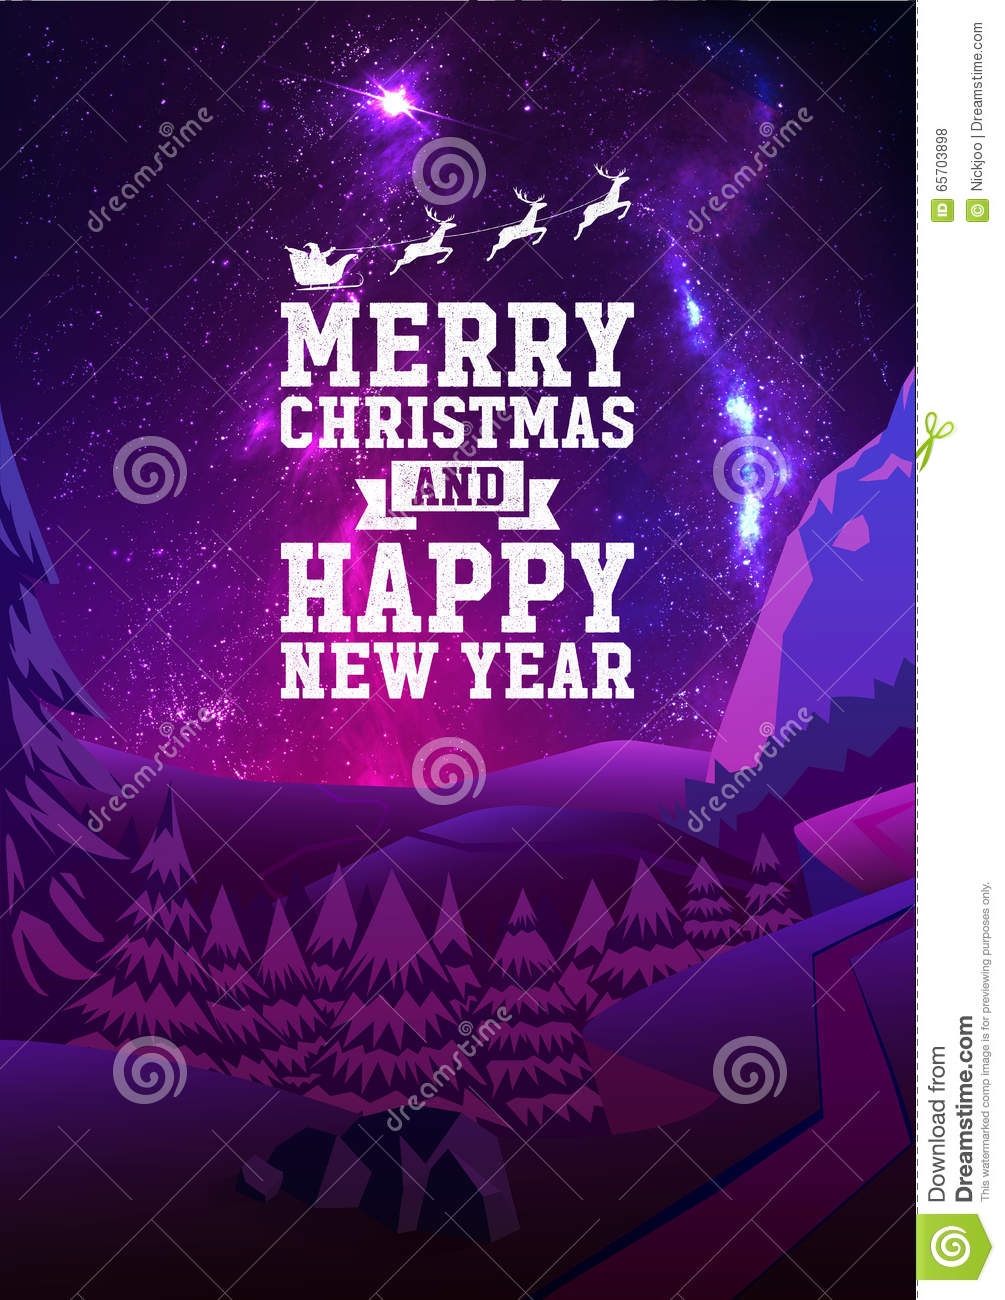 merry christmas and happy new year greeting card with